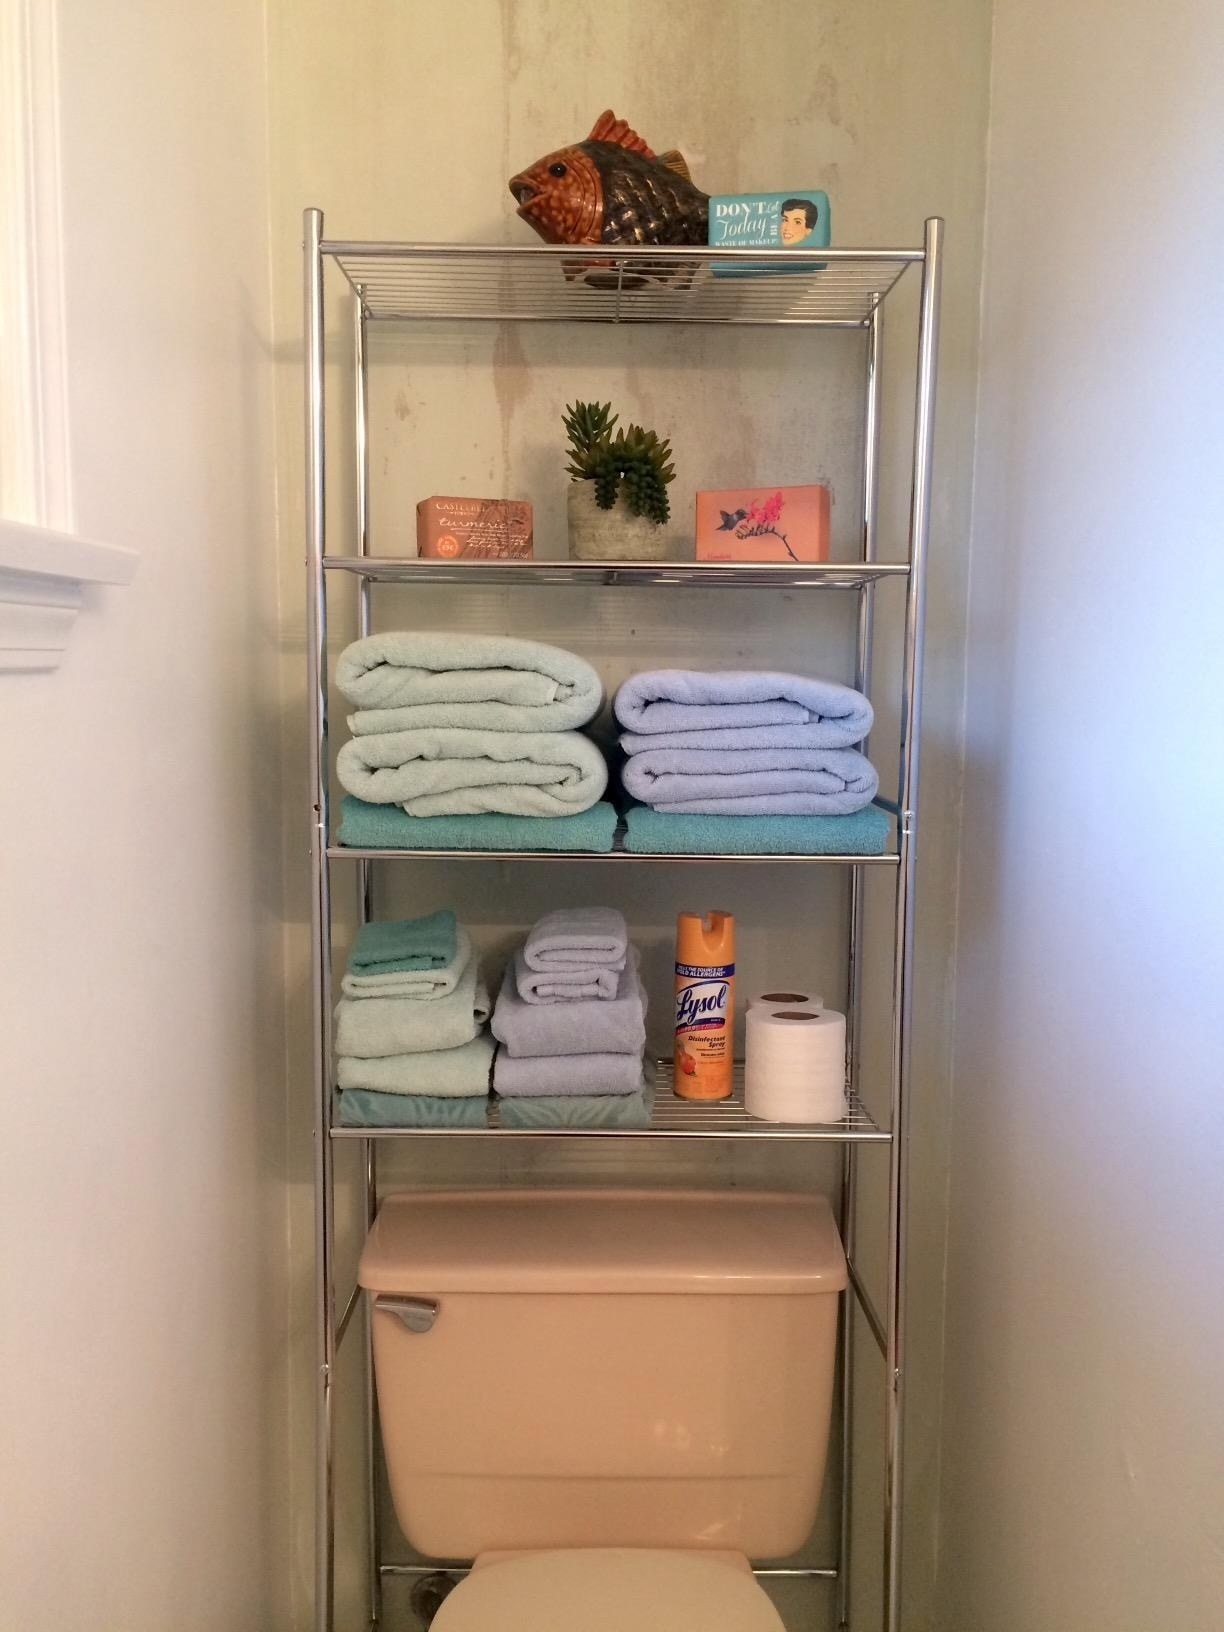 The unit with four shelves directly above a toilet